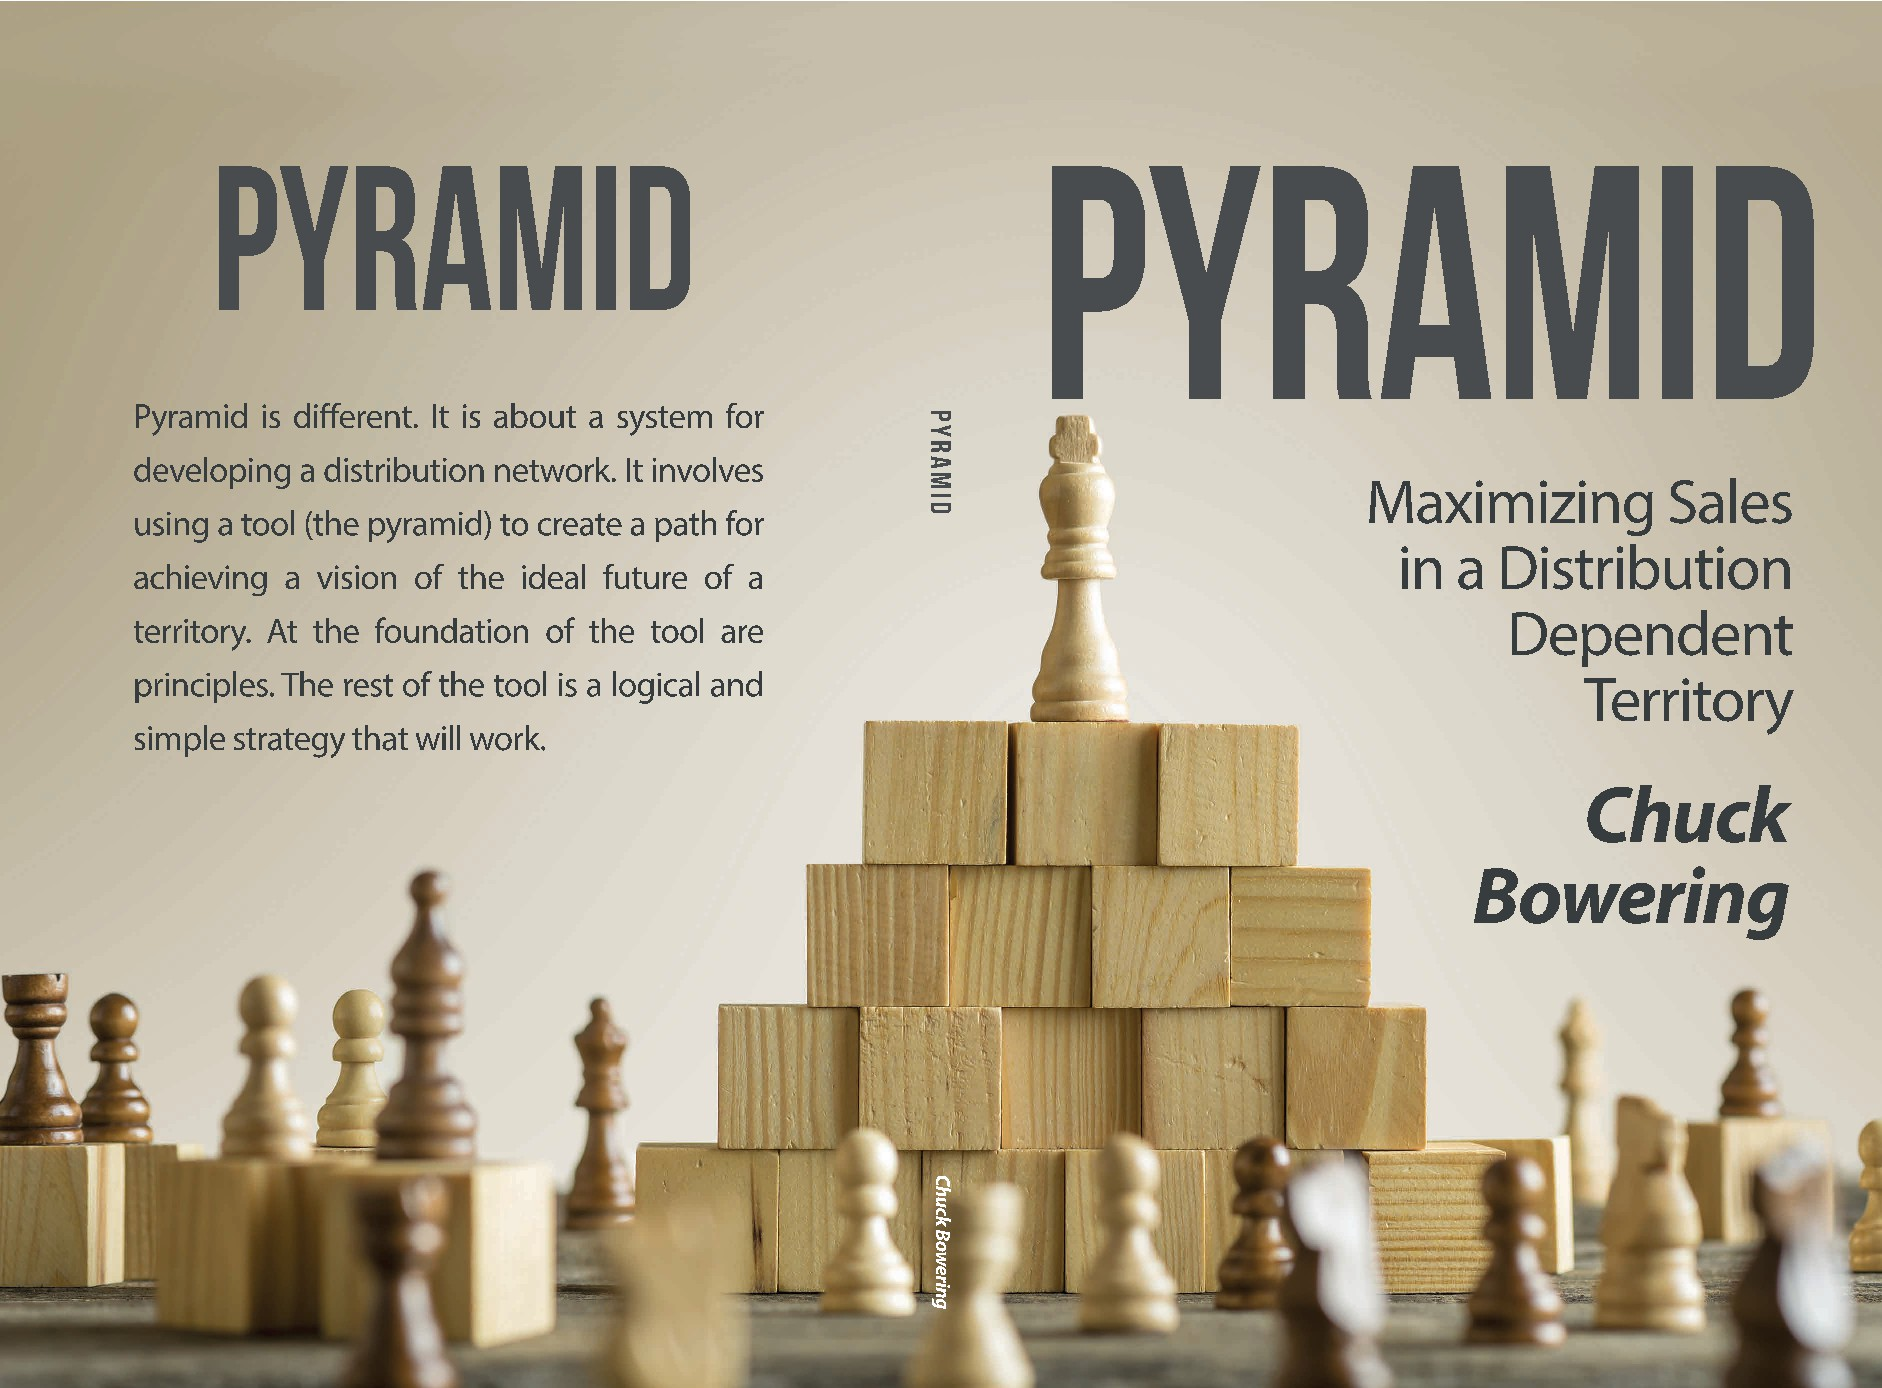 Make this book famous!  Pyramid needs your help.